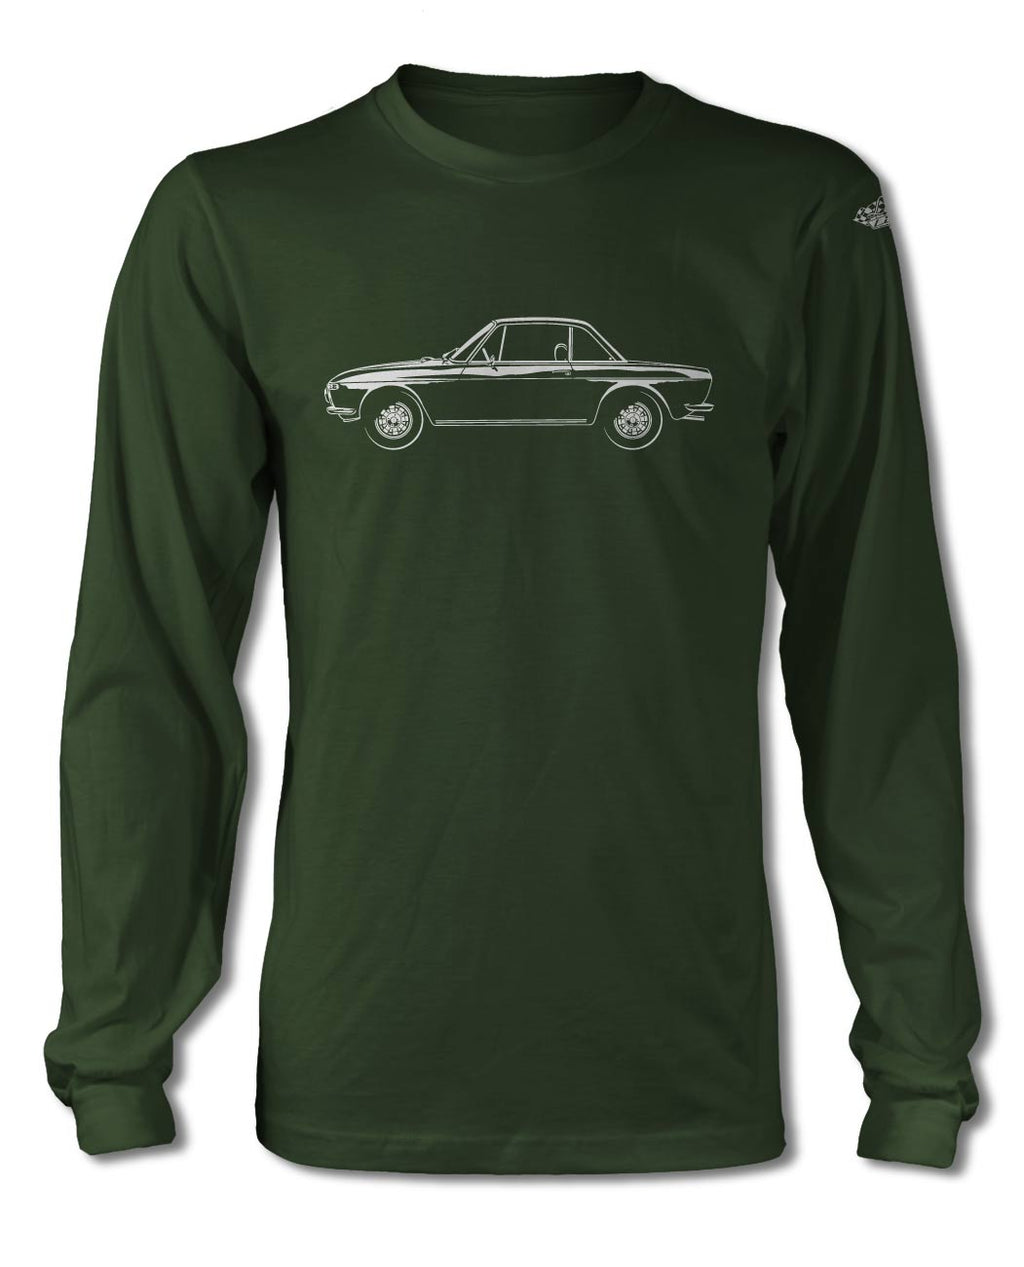 Lancia Fulvia Coupe Series I T-Shirt - Long Sleeves - Side View